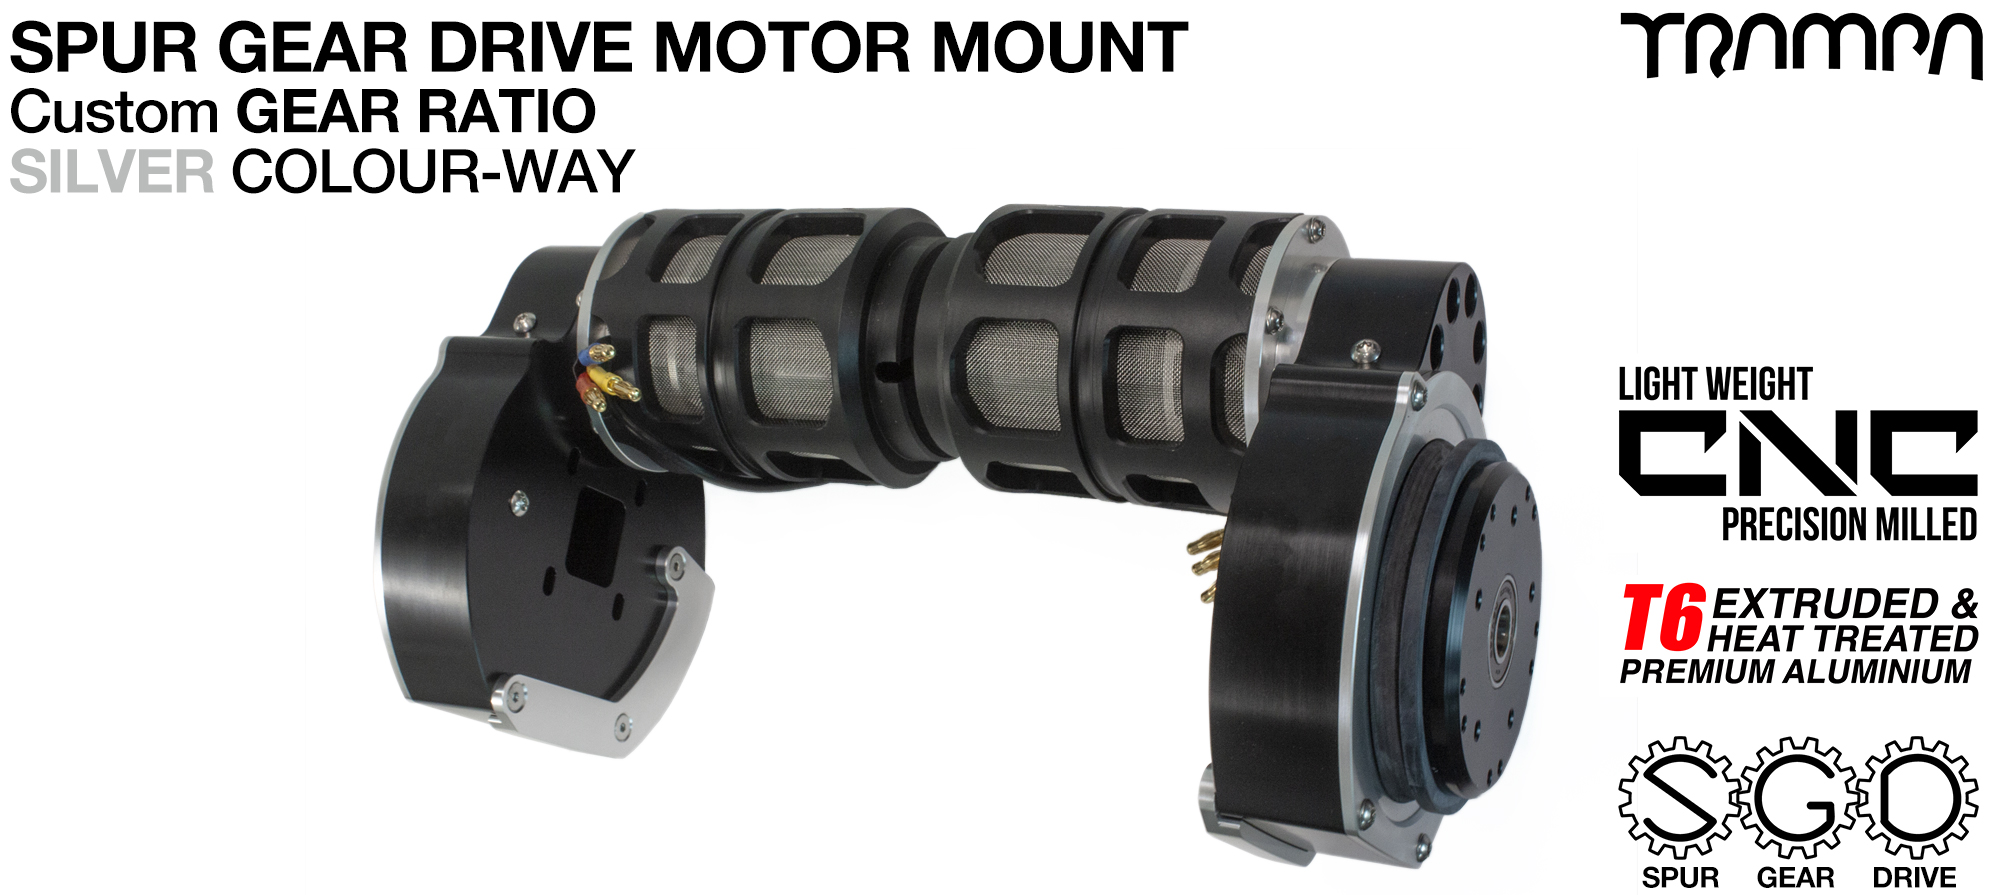 Mountainboard Spur Gear Drive TWIN Motor Mounts